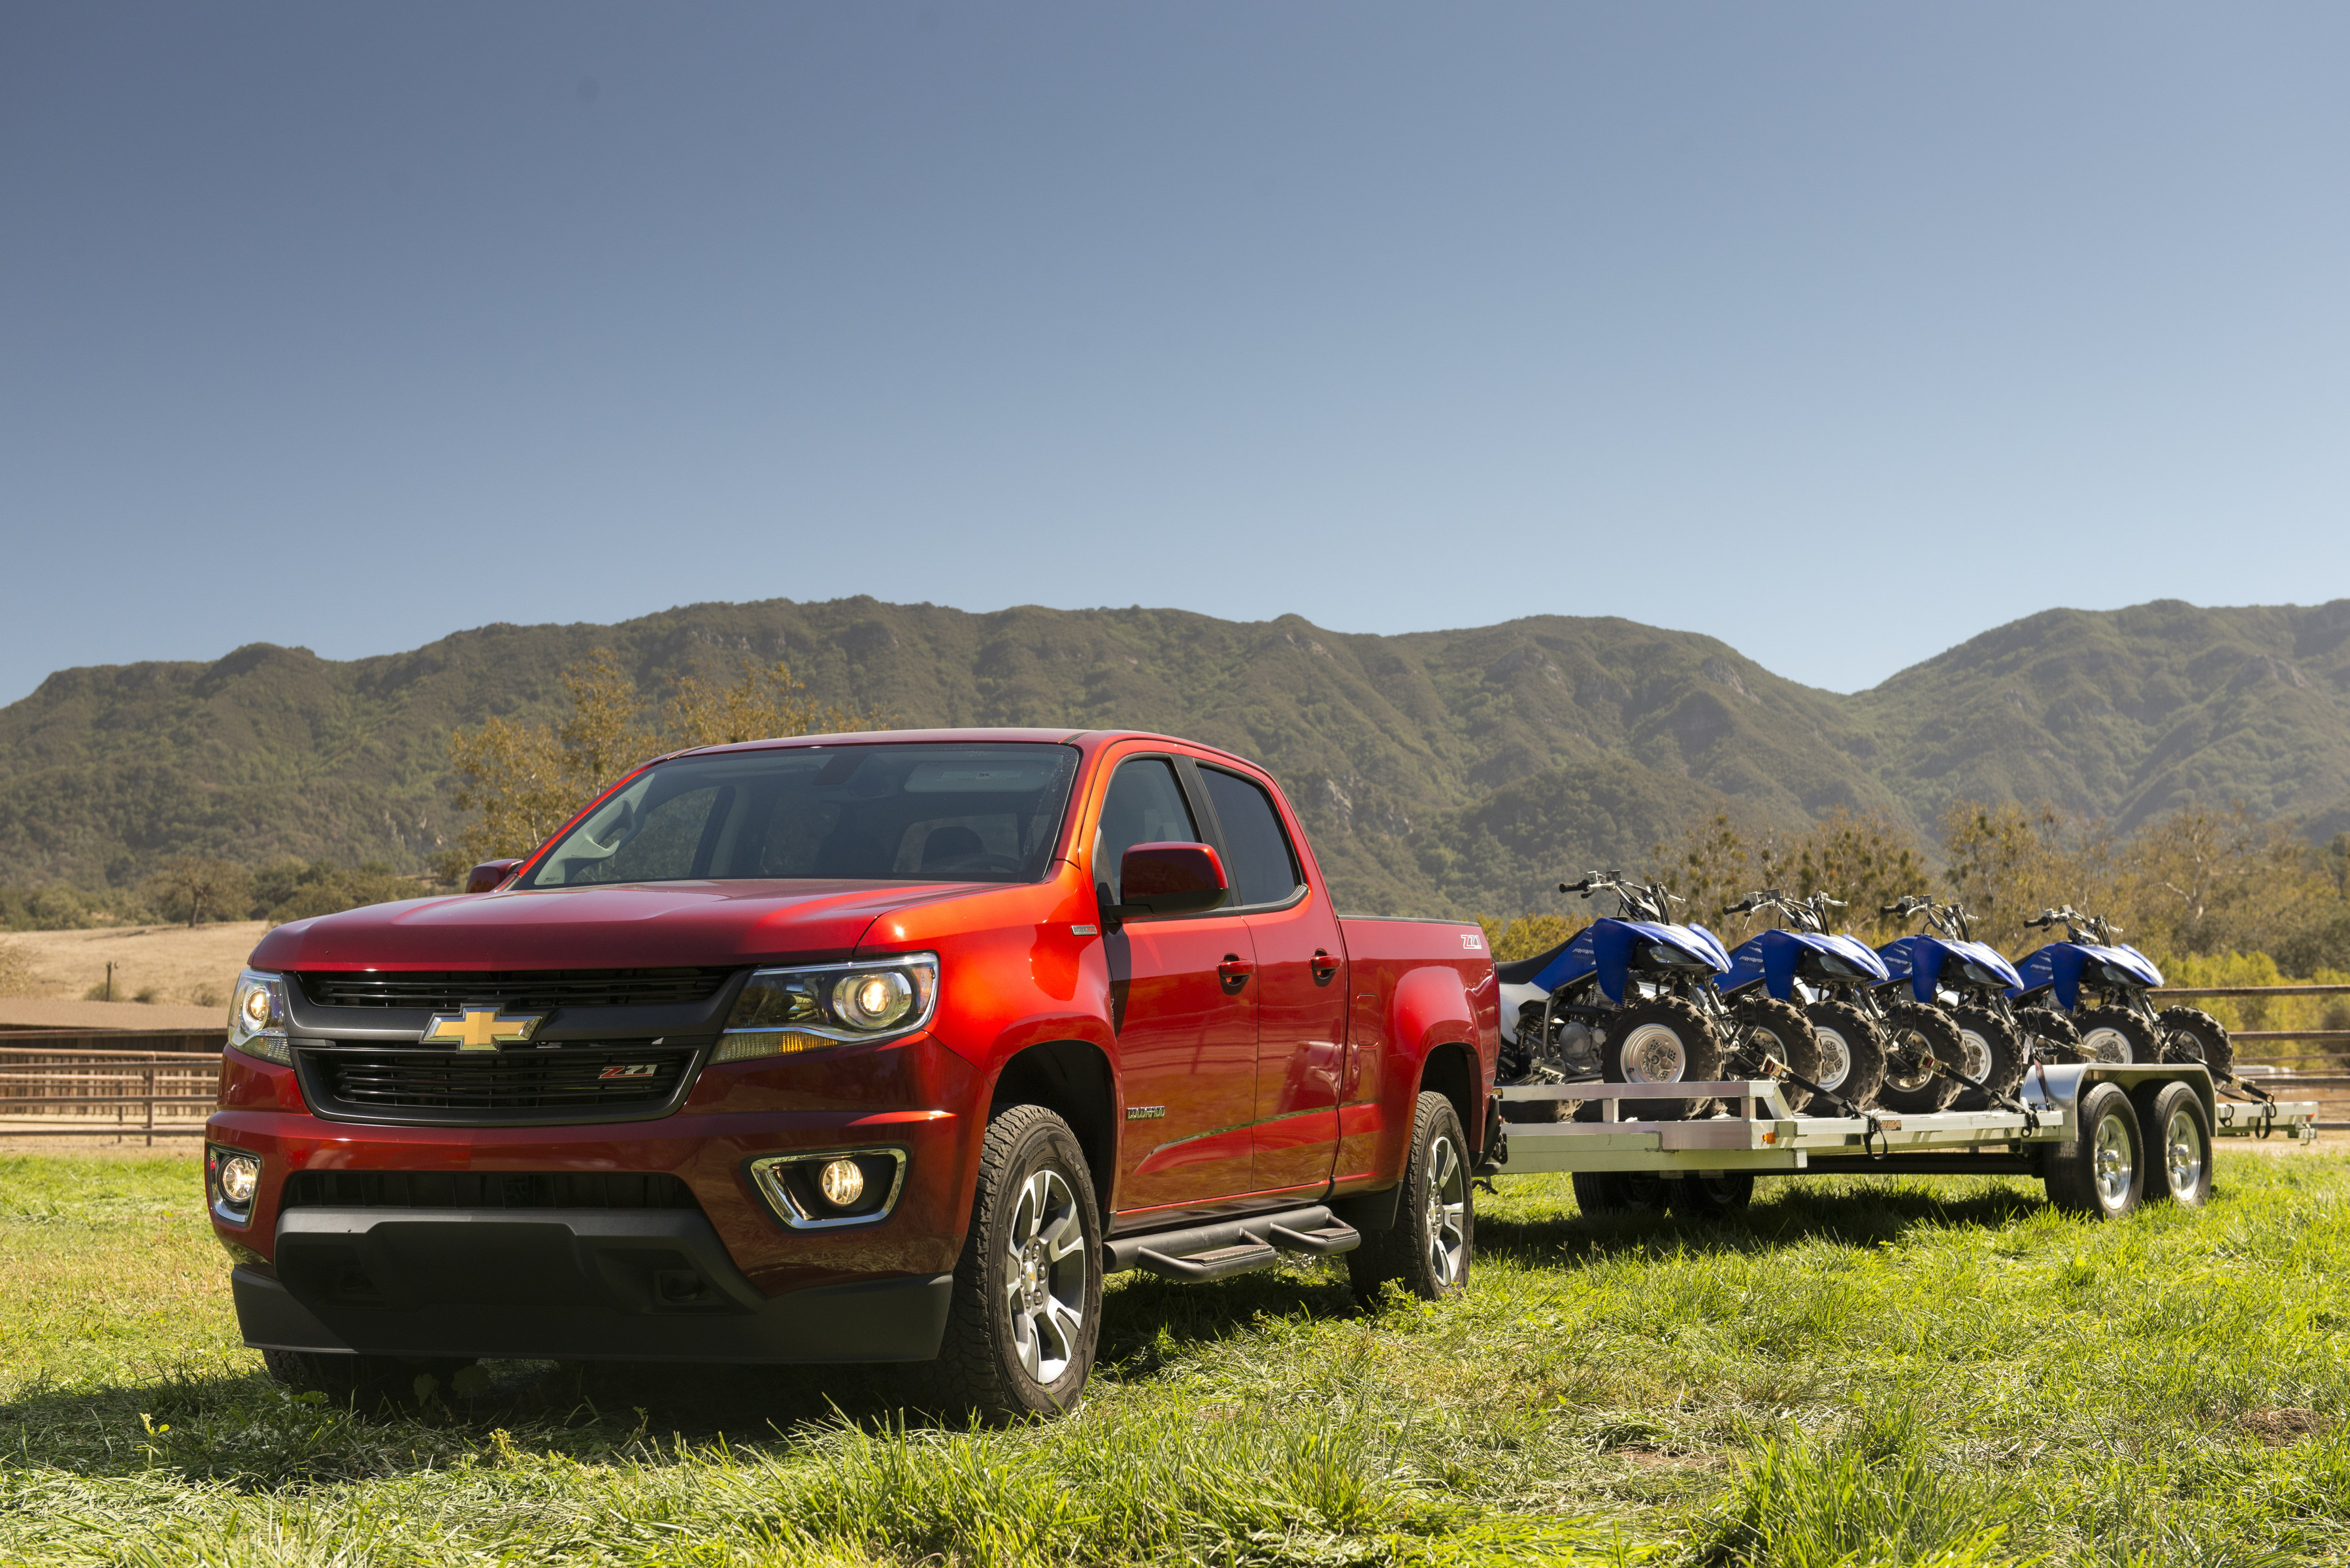 a 2018 chevrolet colorado showing off its small truck diesel power by towing a trailer loaded with 4 ATVs